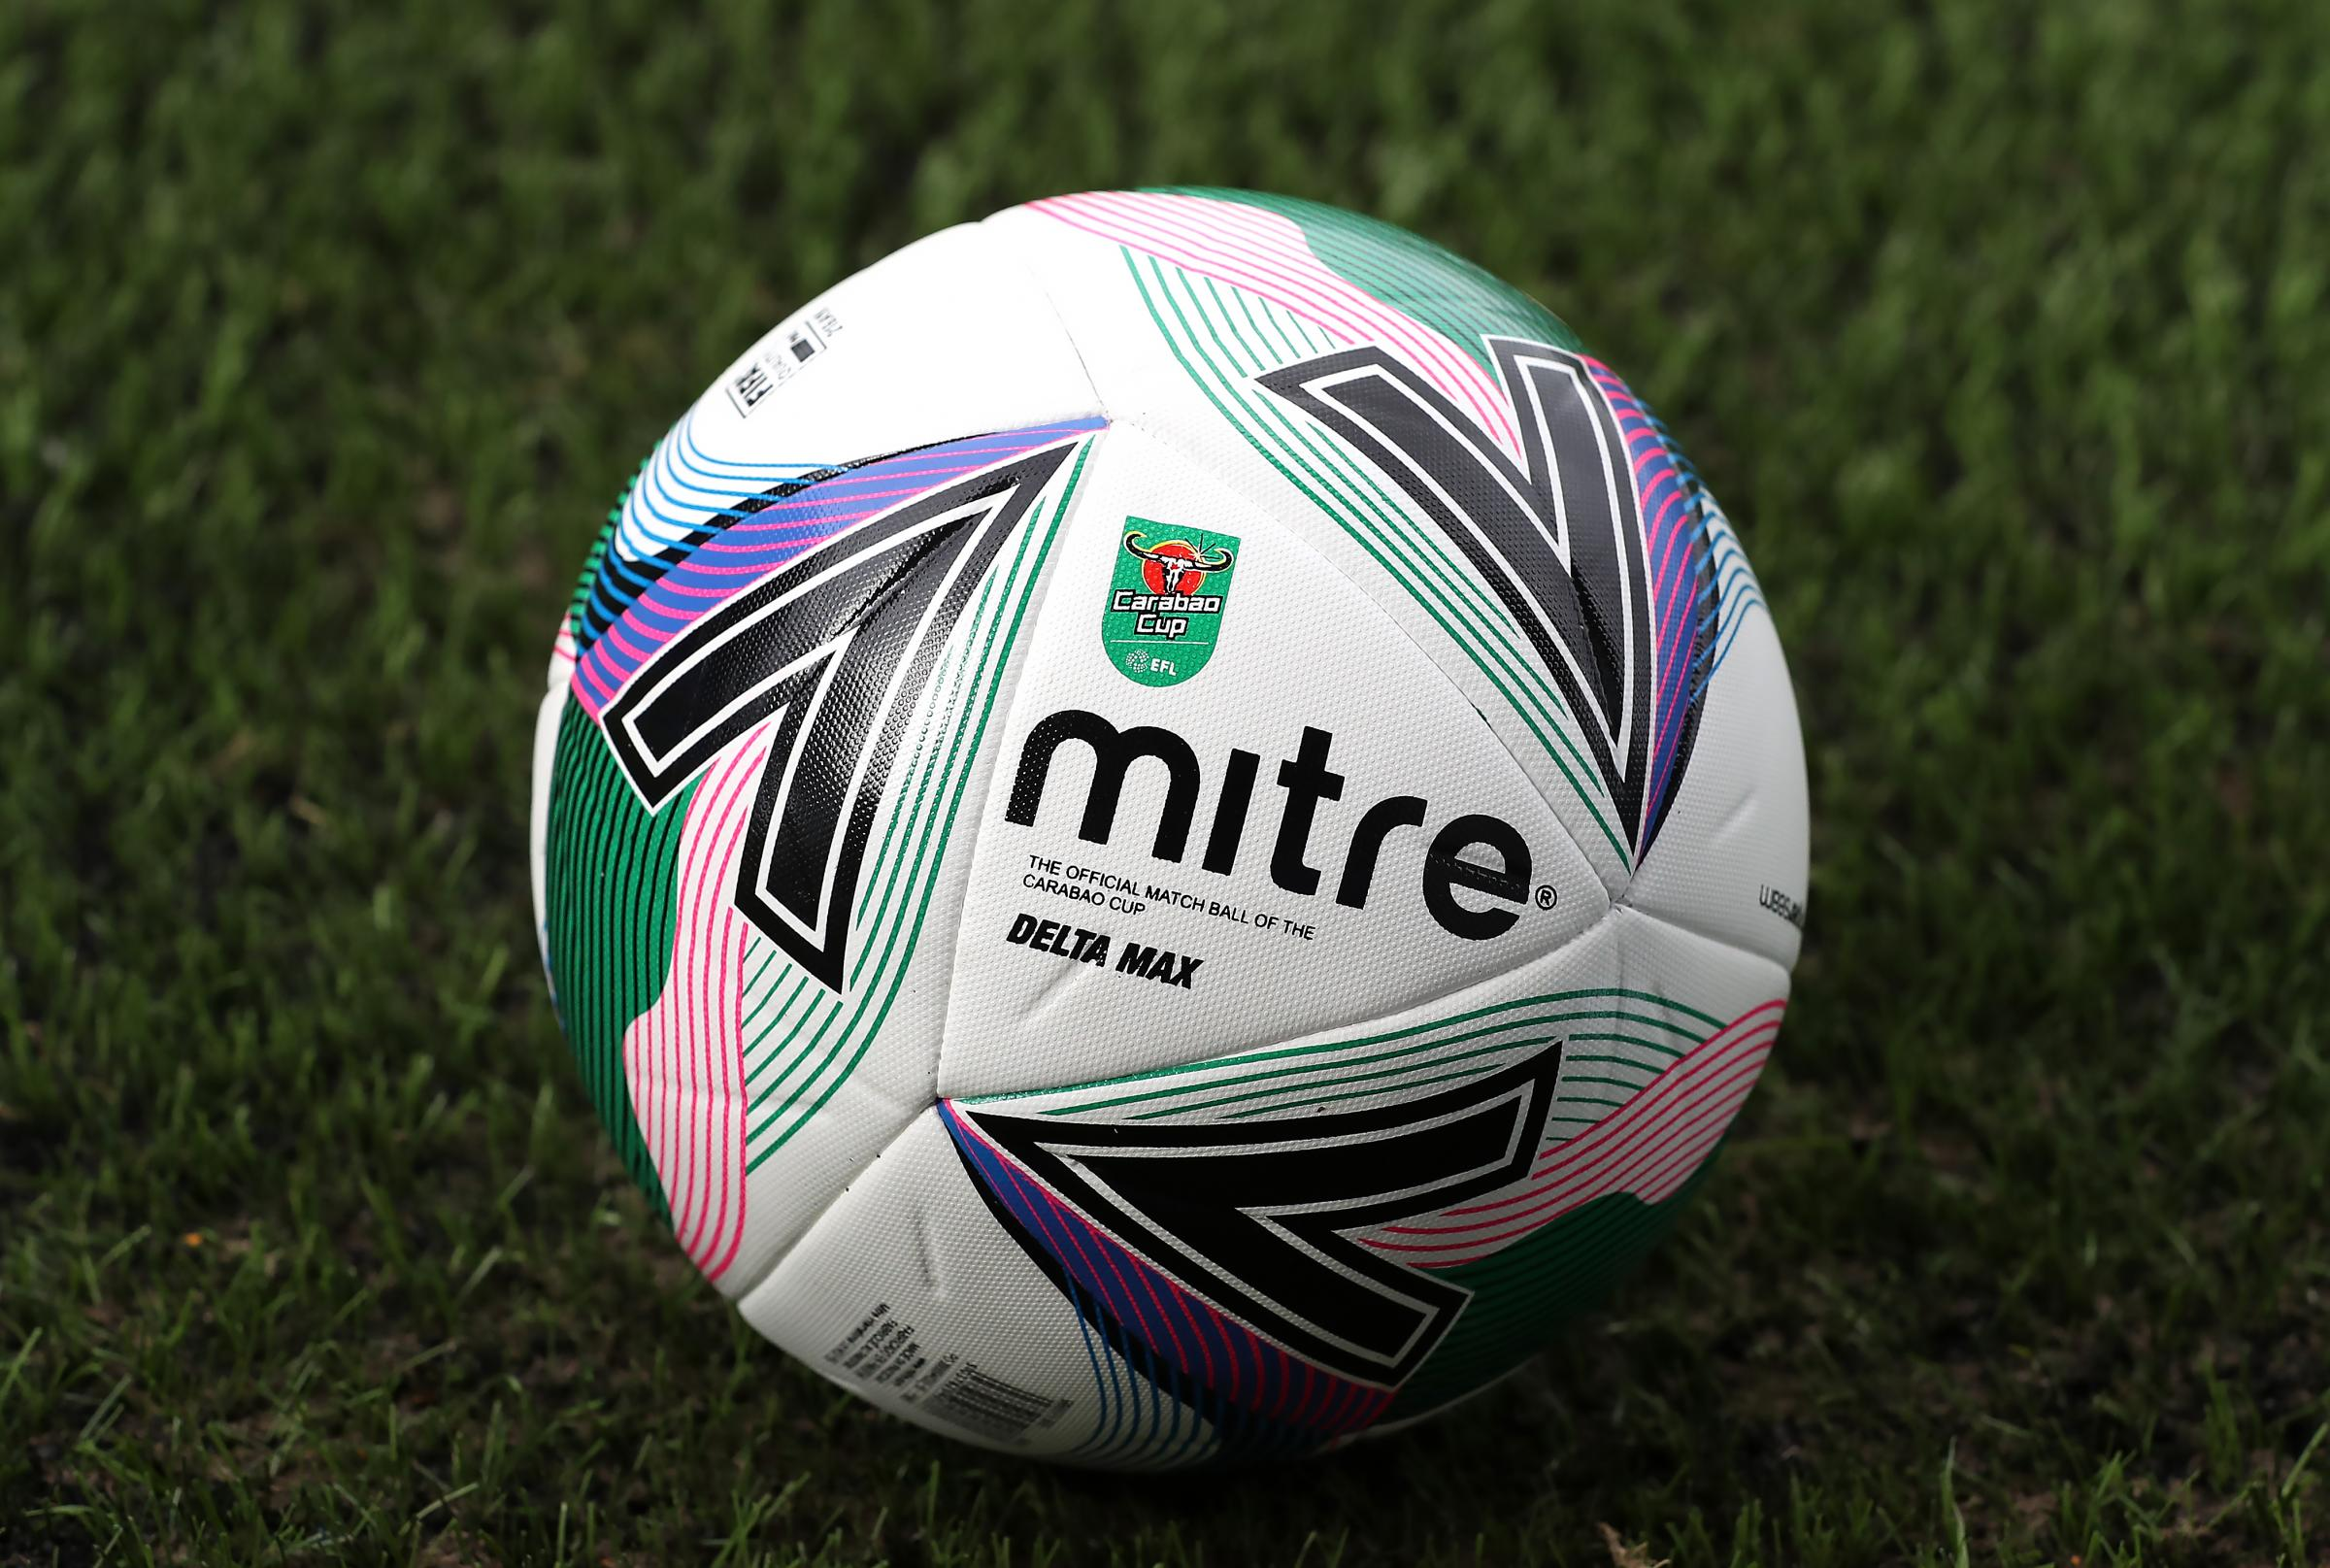 Southampton to face Newport County in Carabao Cup round two